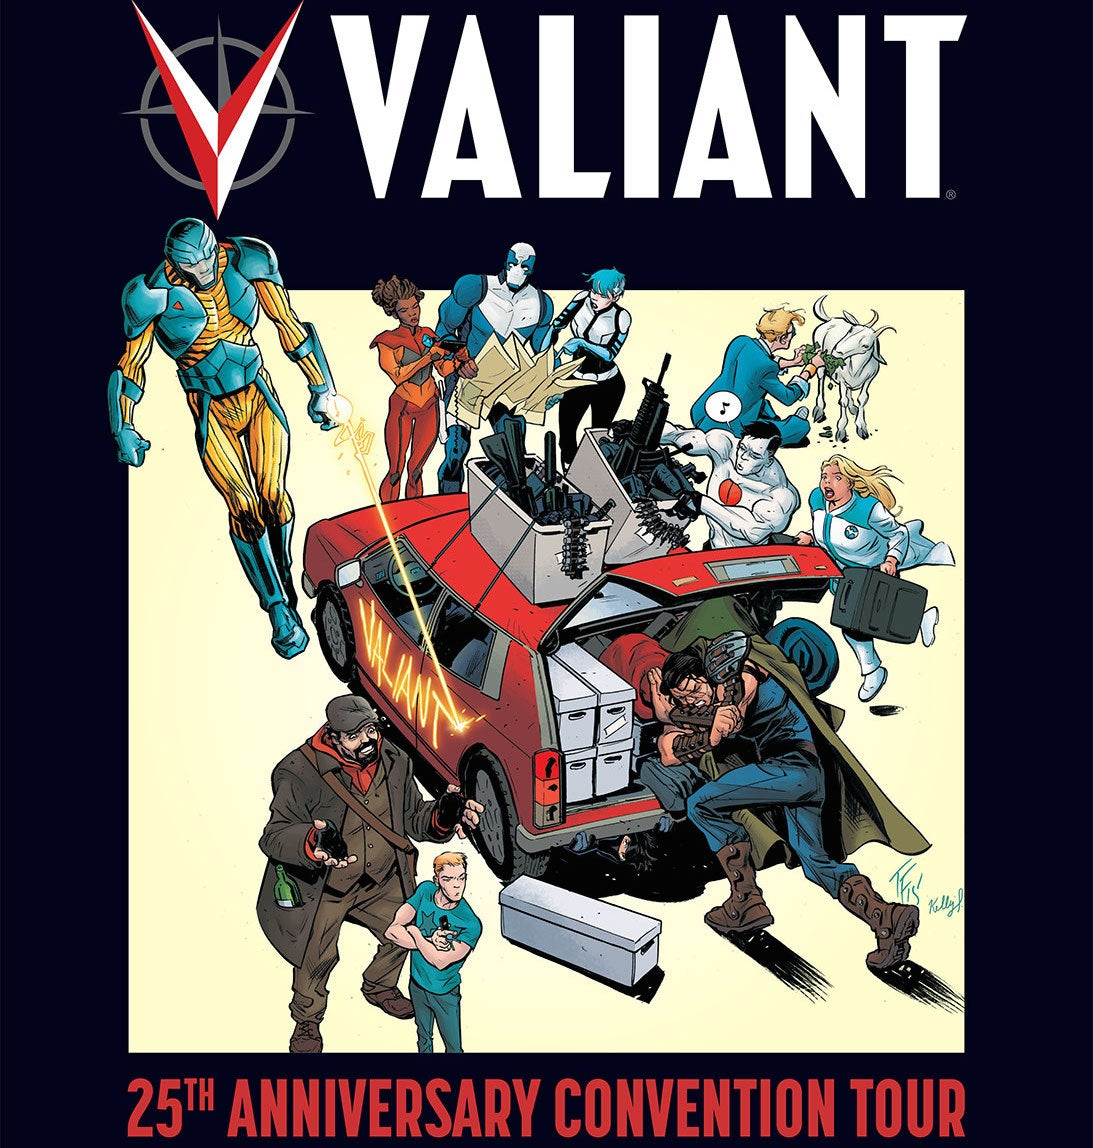 VALIANT 25th-Anniversary-Con-Tour Art-by-Tom-Fowler